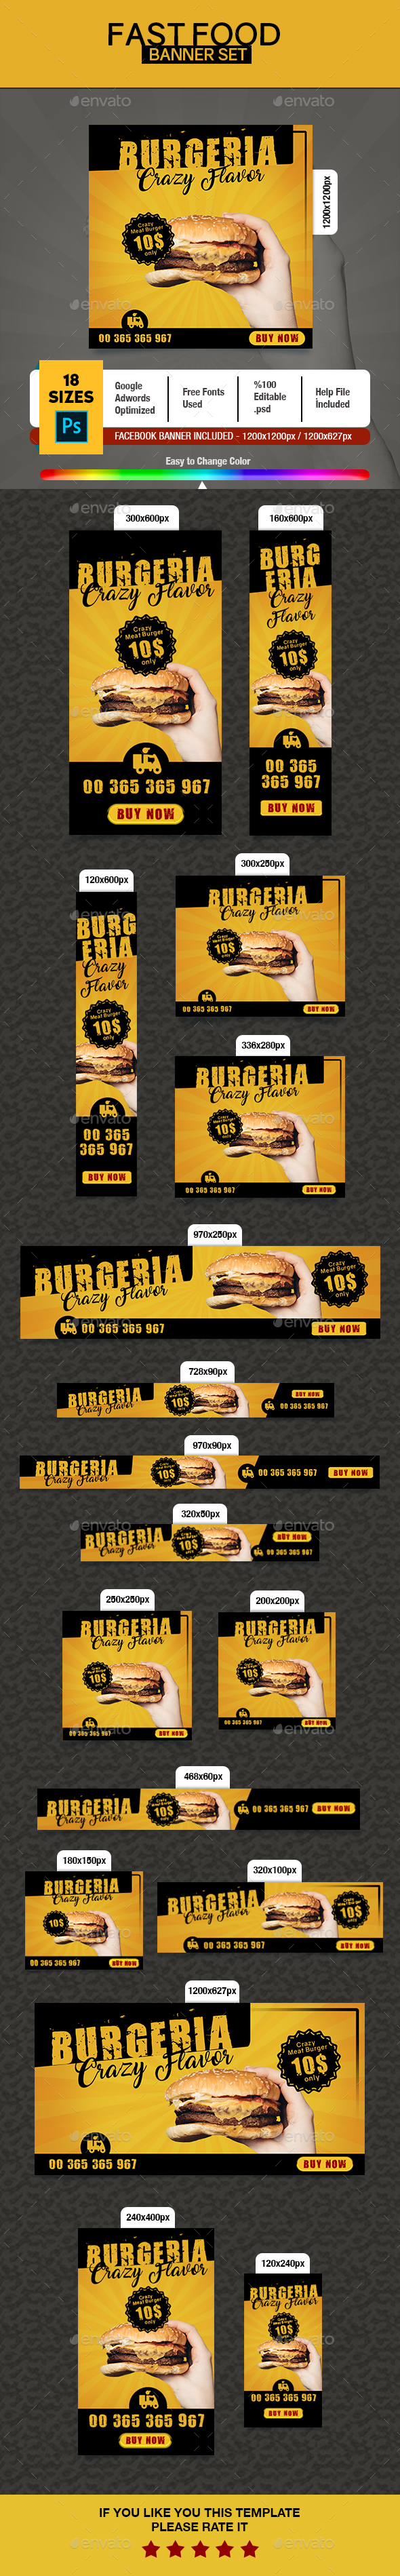 Fast Food Banner - Banners & Ads Web Elements